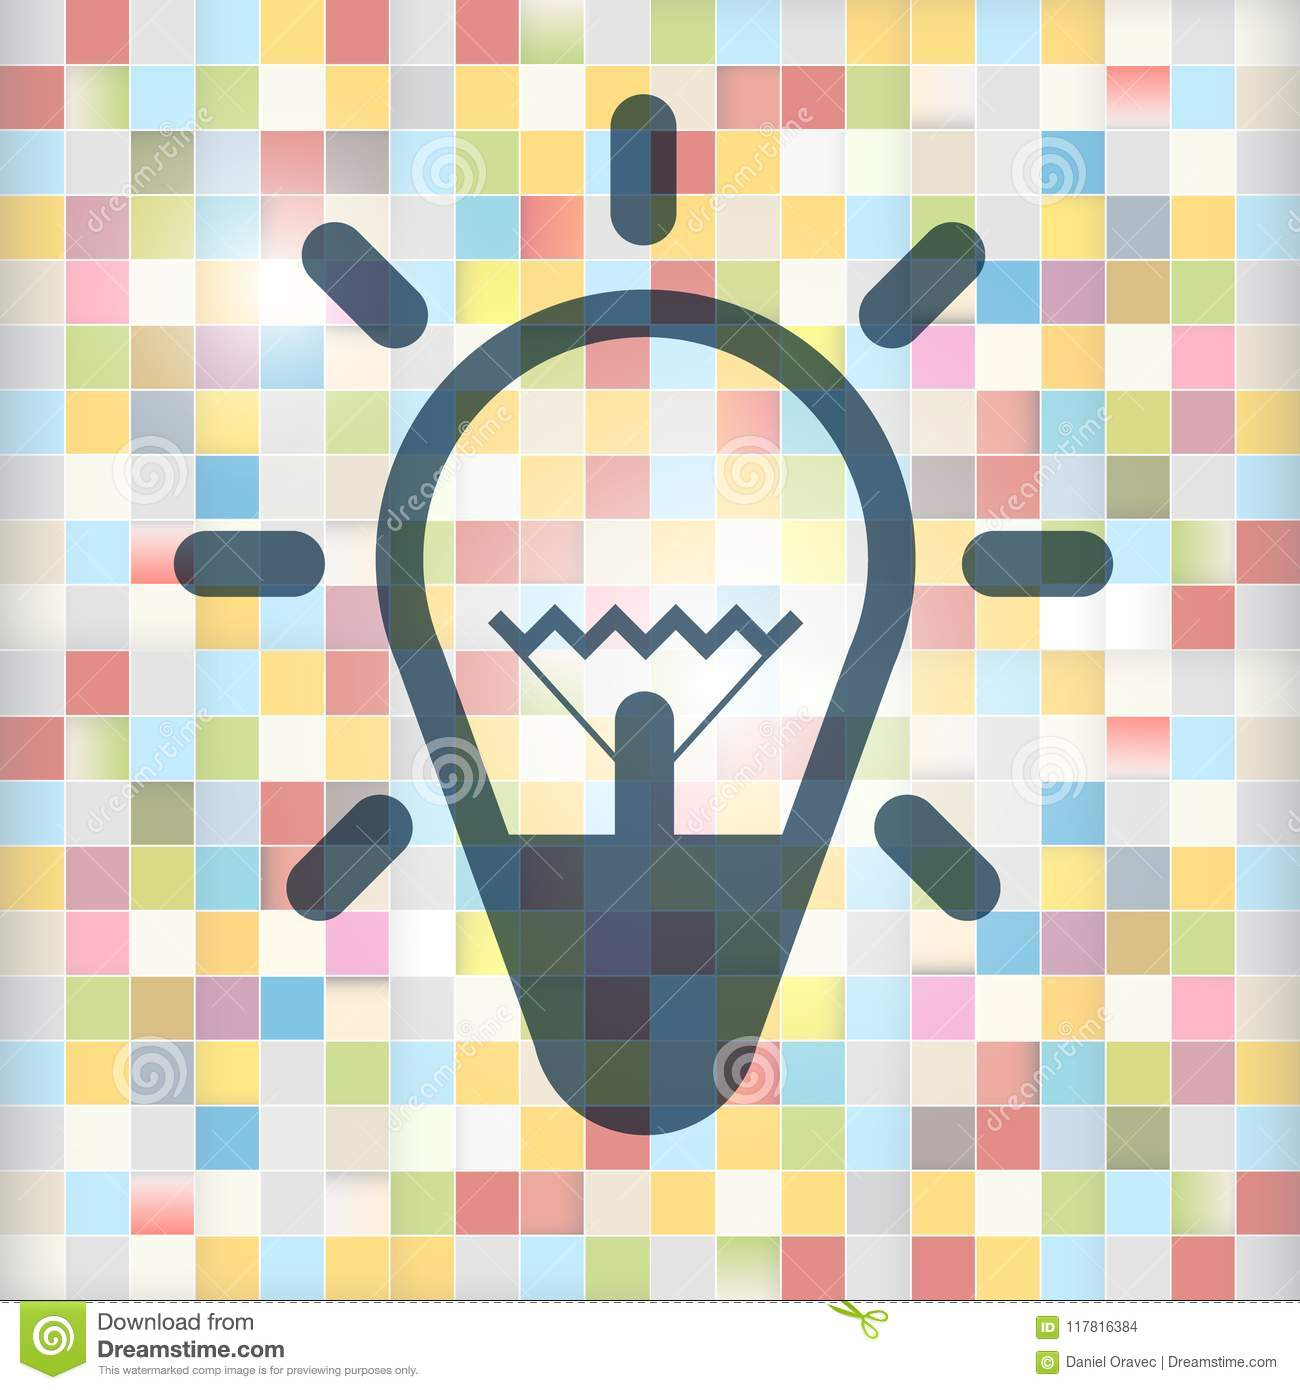 Bulb Icon on Colorful Squares Background.